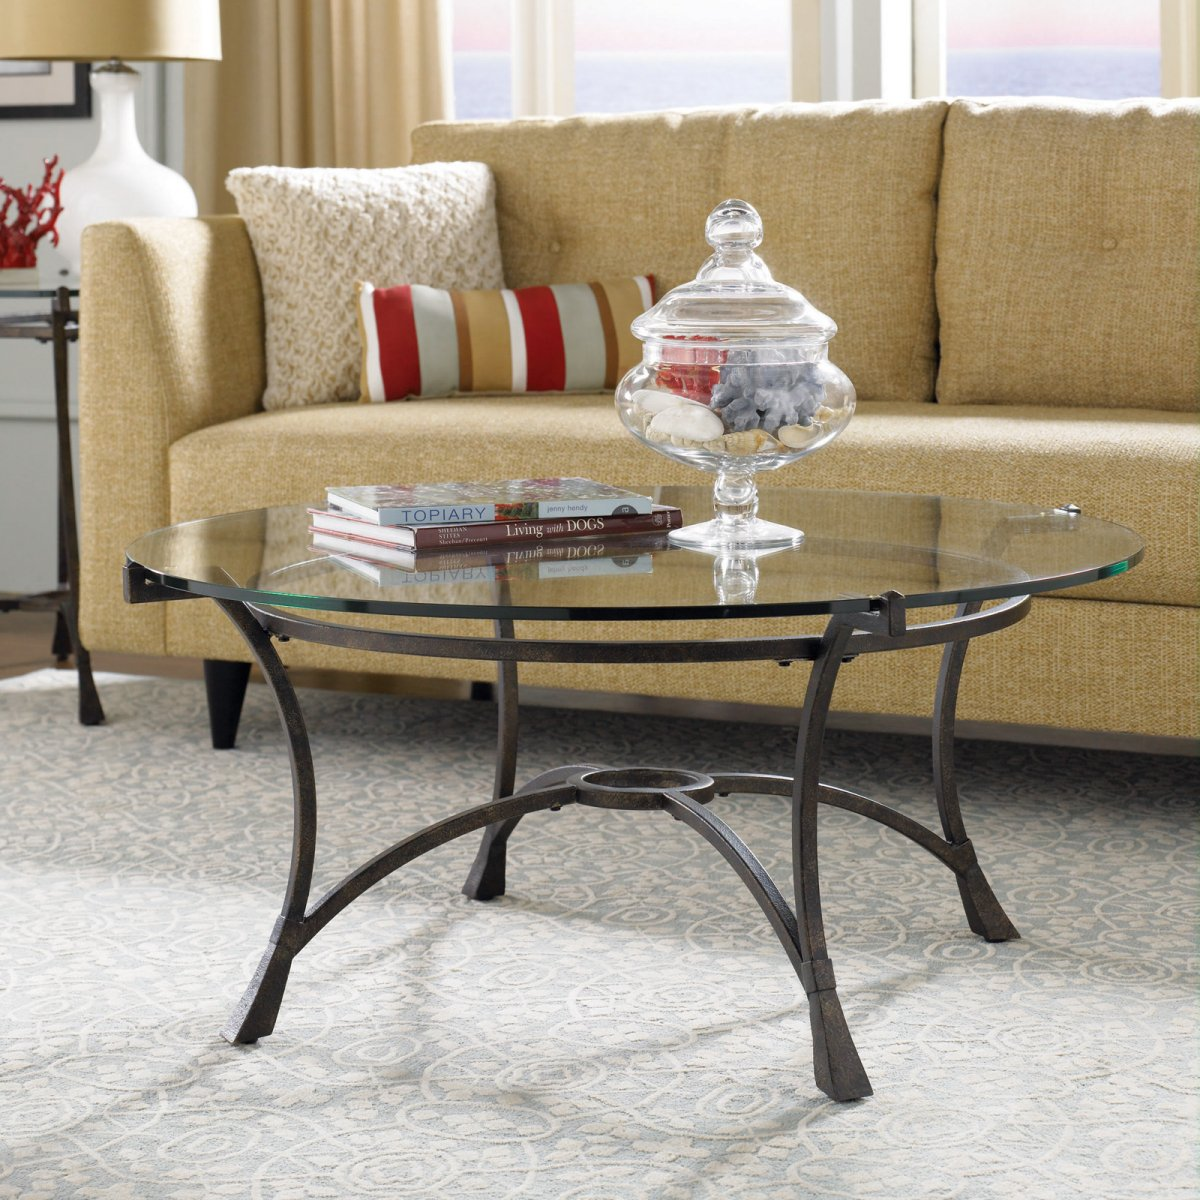 round glass top coffee table ideas decorating how decorate crate and barrel end decor ashley furniture corner primitive bedroom keepsakes pulaski homesense dinner sets tall